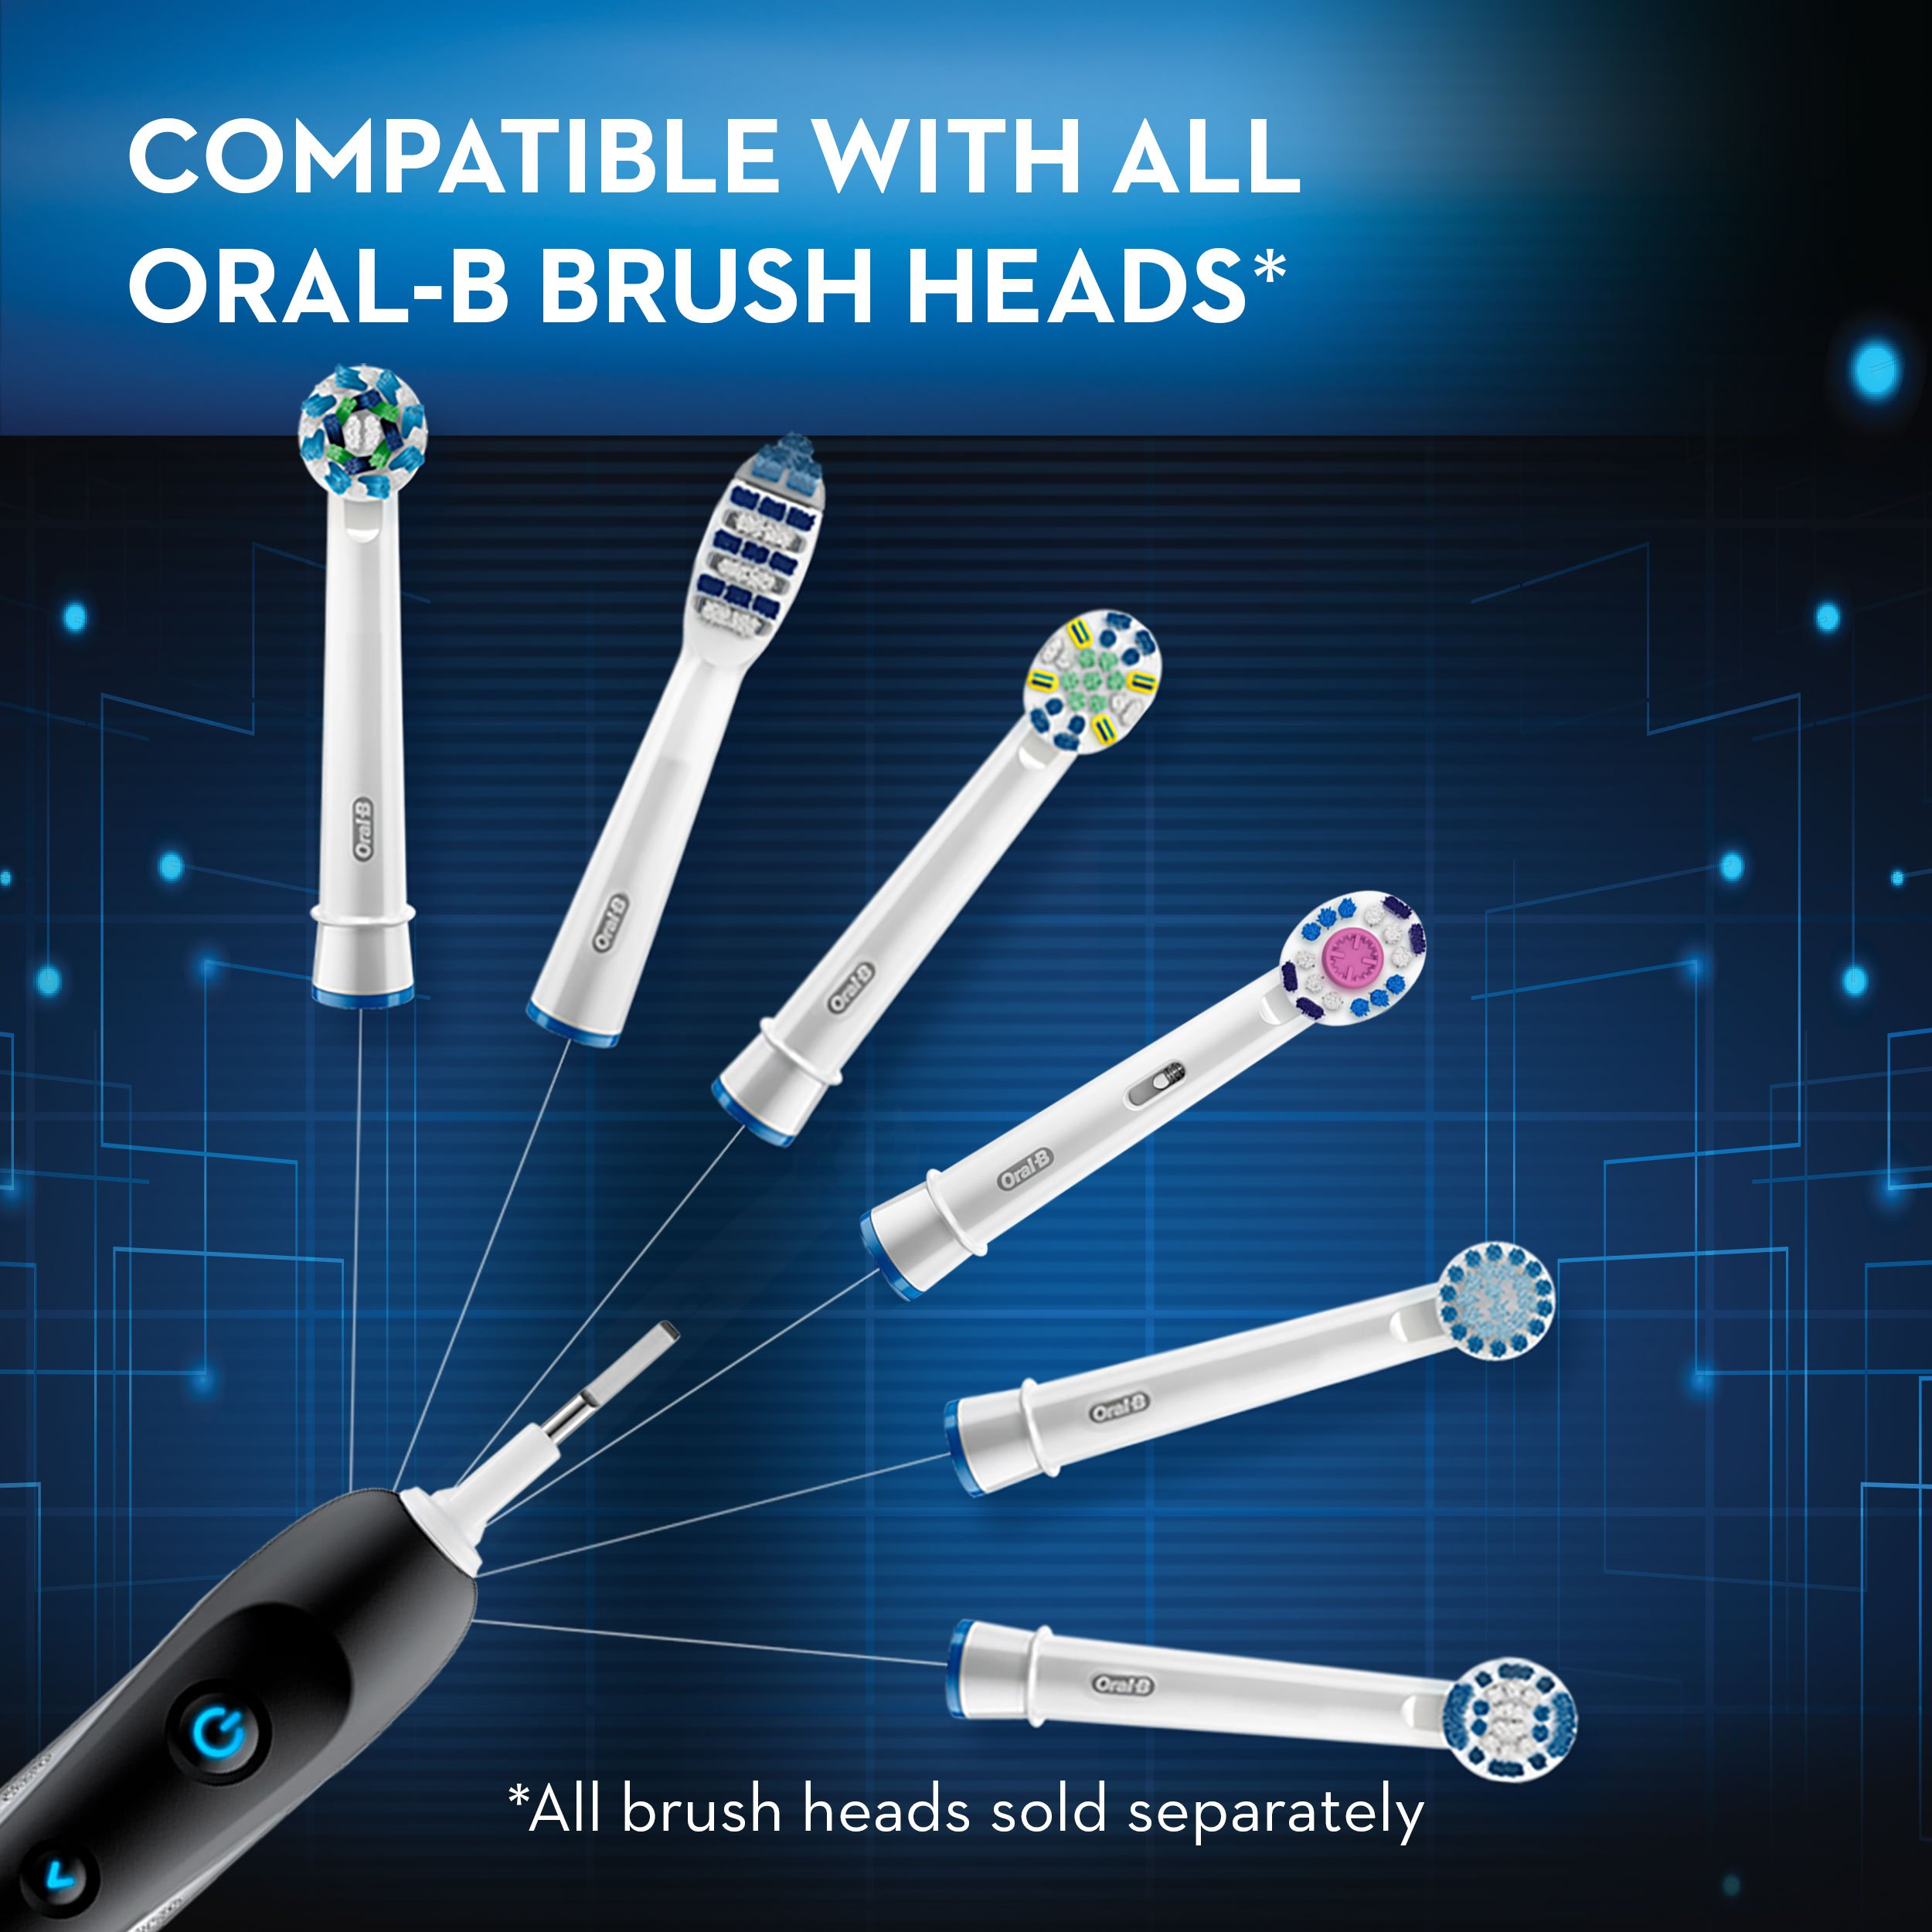 Oral-B 7000 SmartSeries Rechargeable Power Electric Toothbrush with 3 Replacement Brush Heads, Bluetooth Connectivity and Travel Case, Amazon Dash Replenishment Enabled by Oral-B (Image #6)